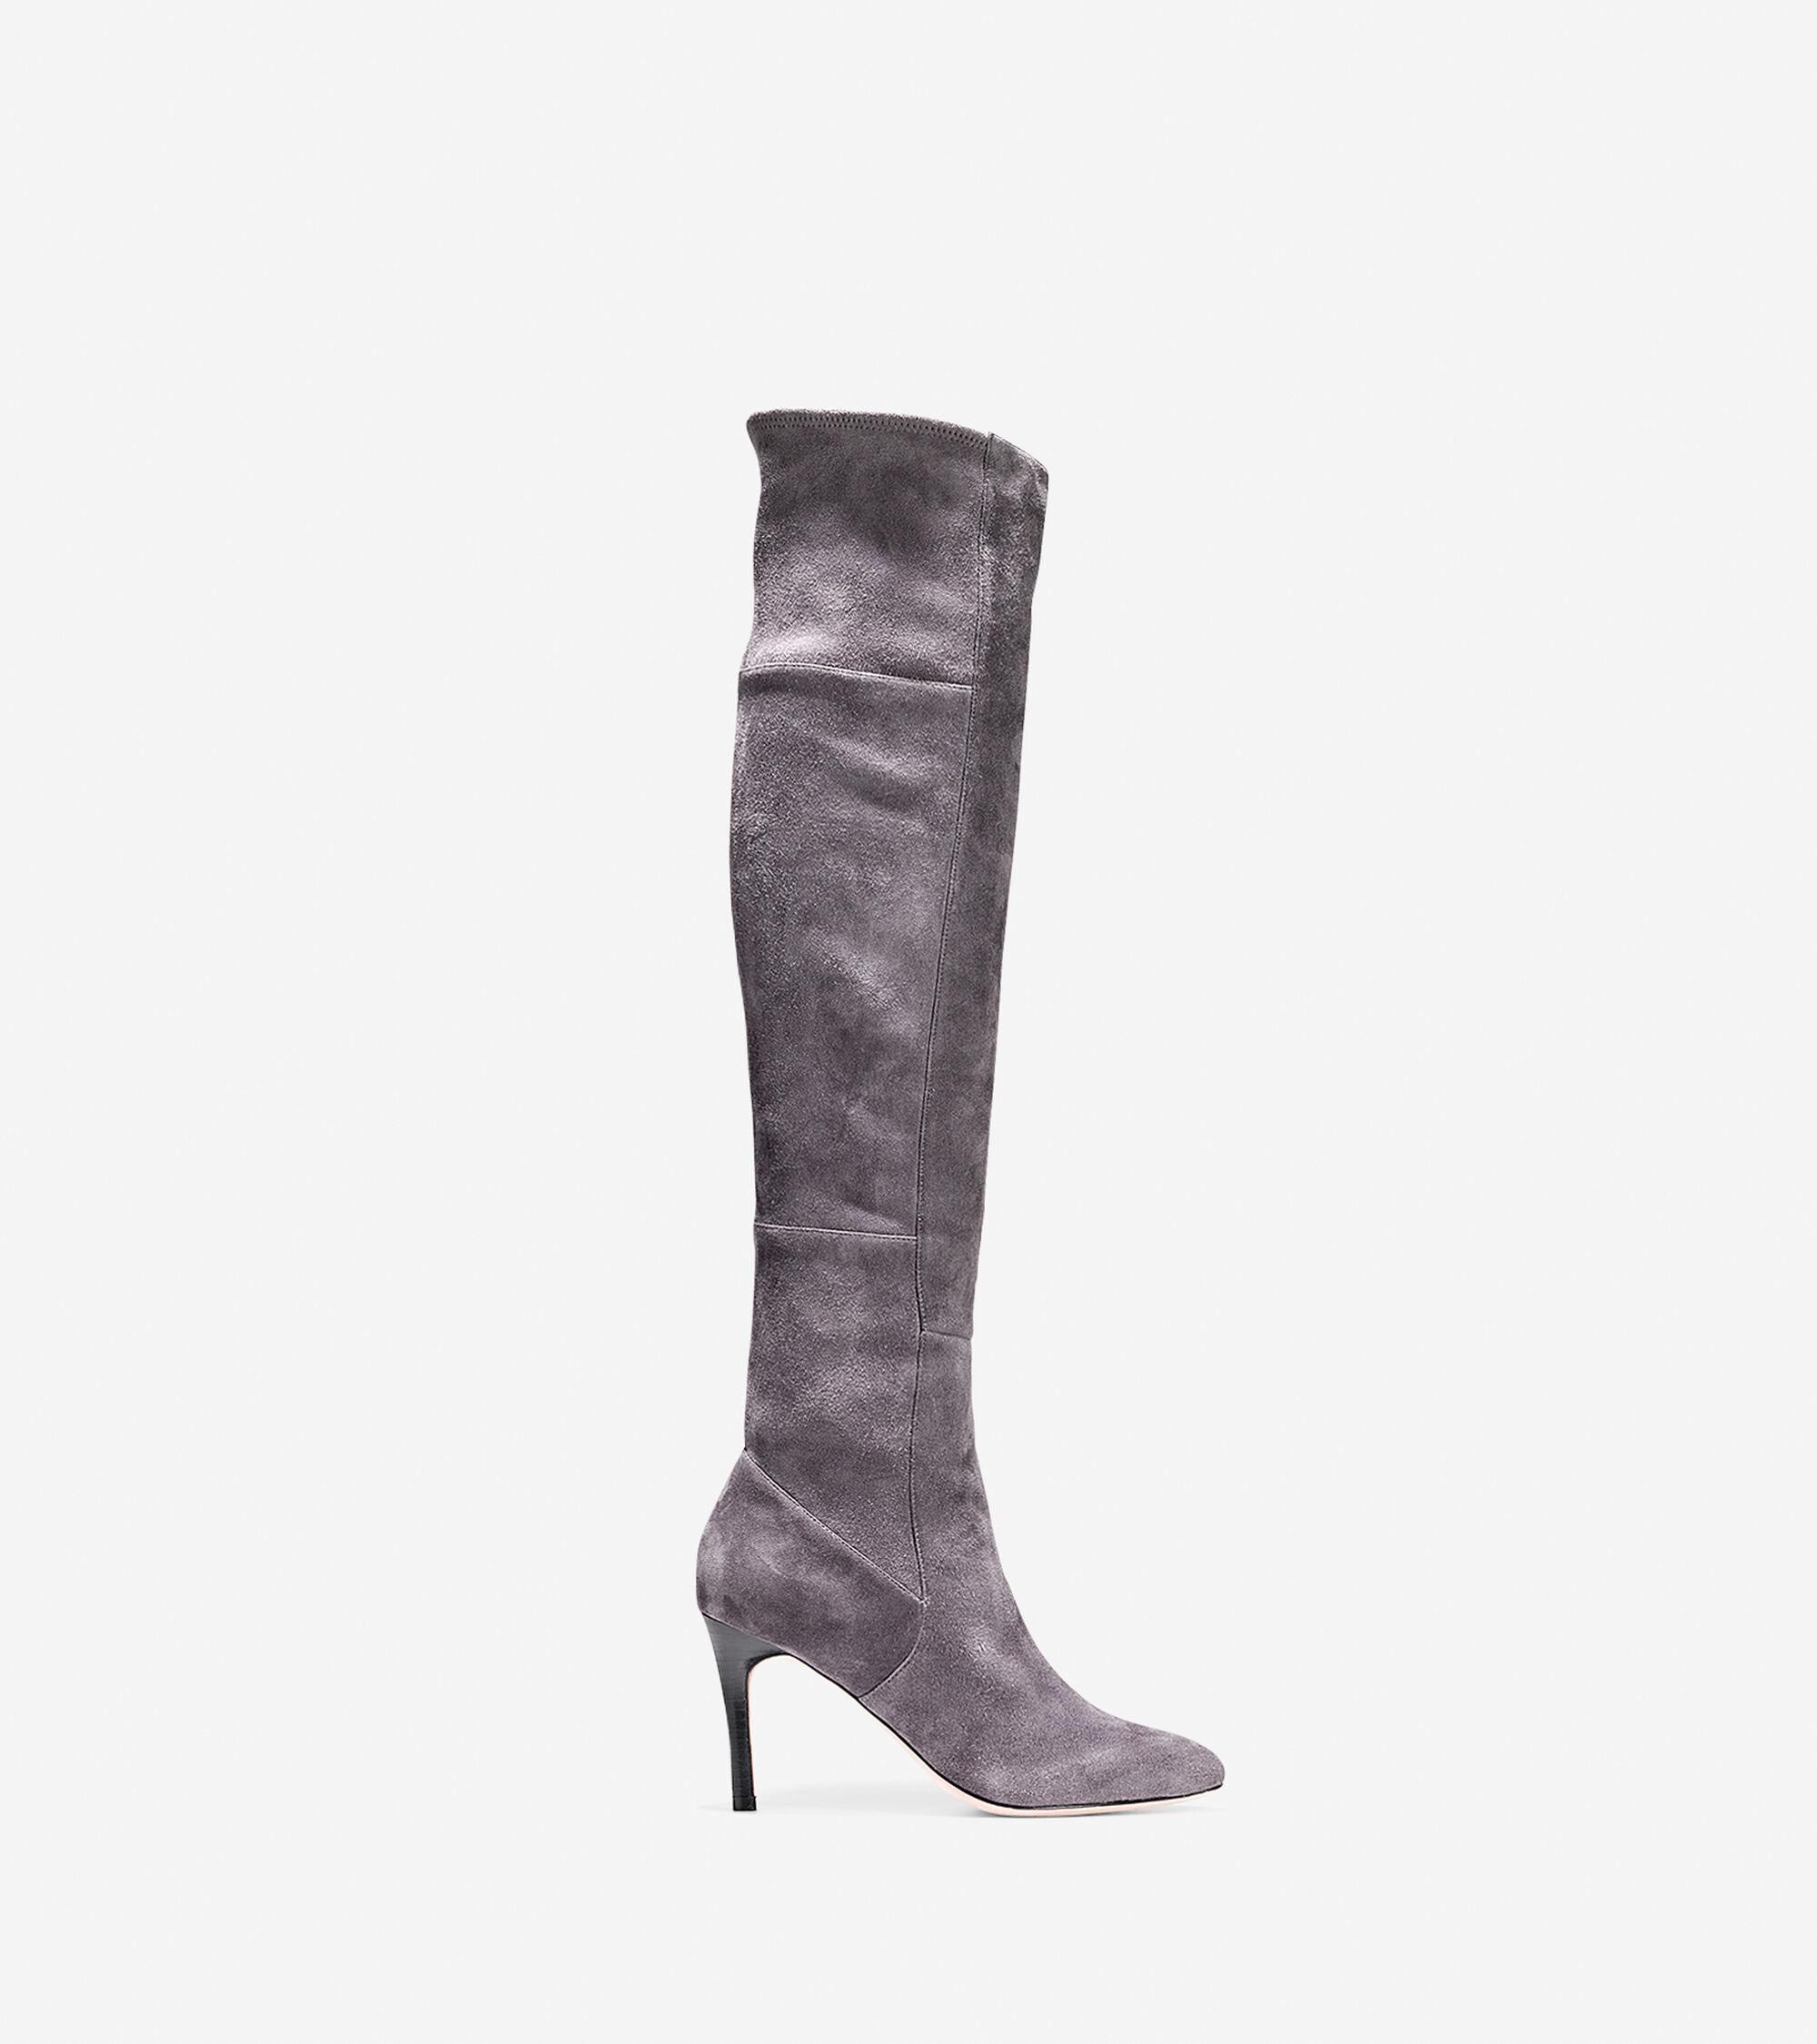 Cole Haan Womens Marina Over The Knee Boots (85mm)